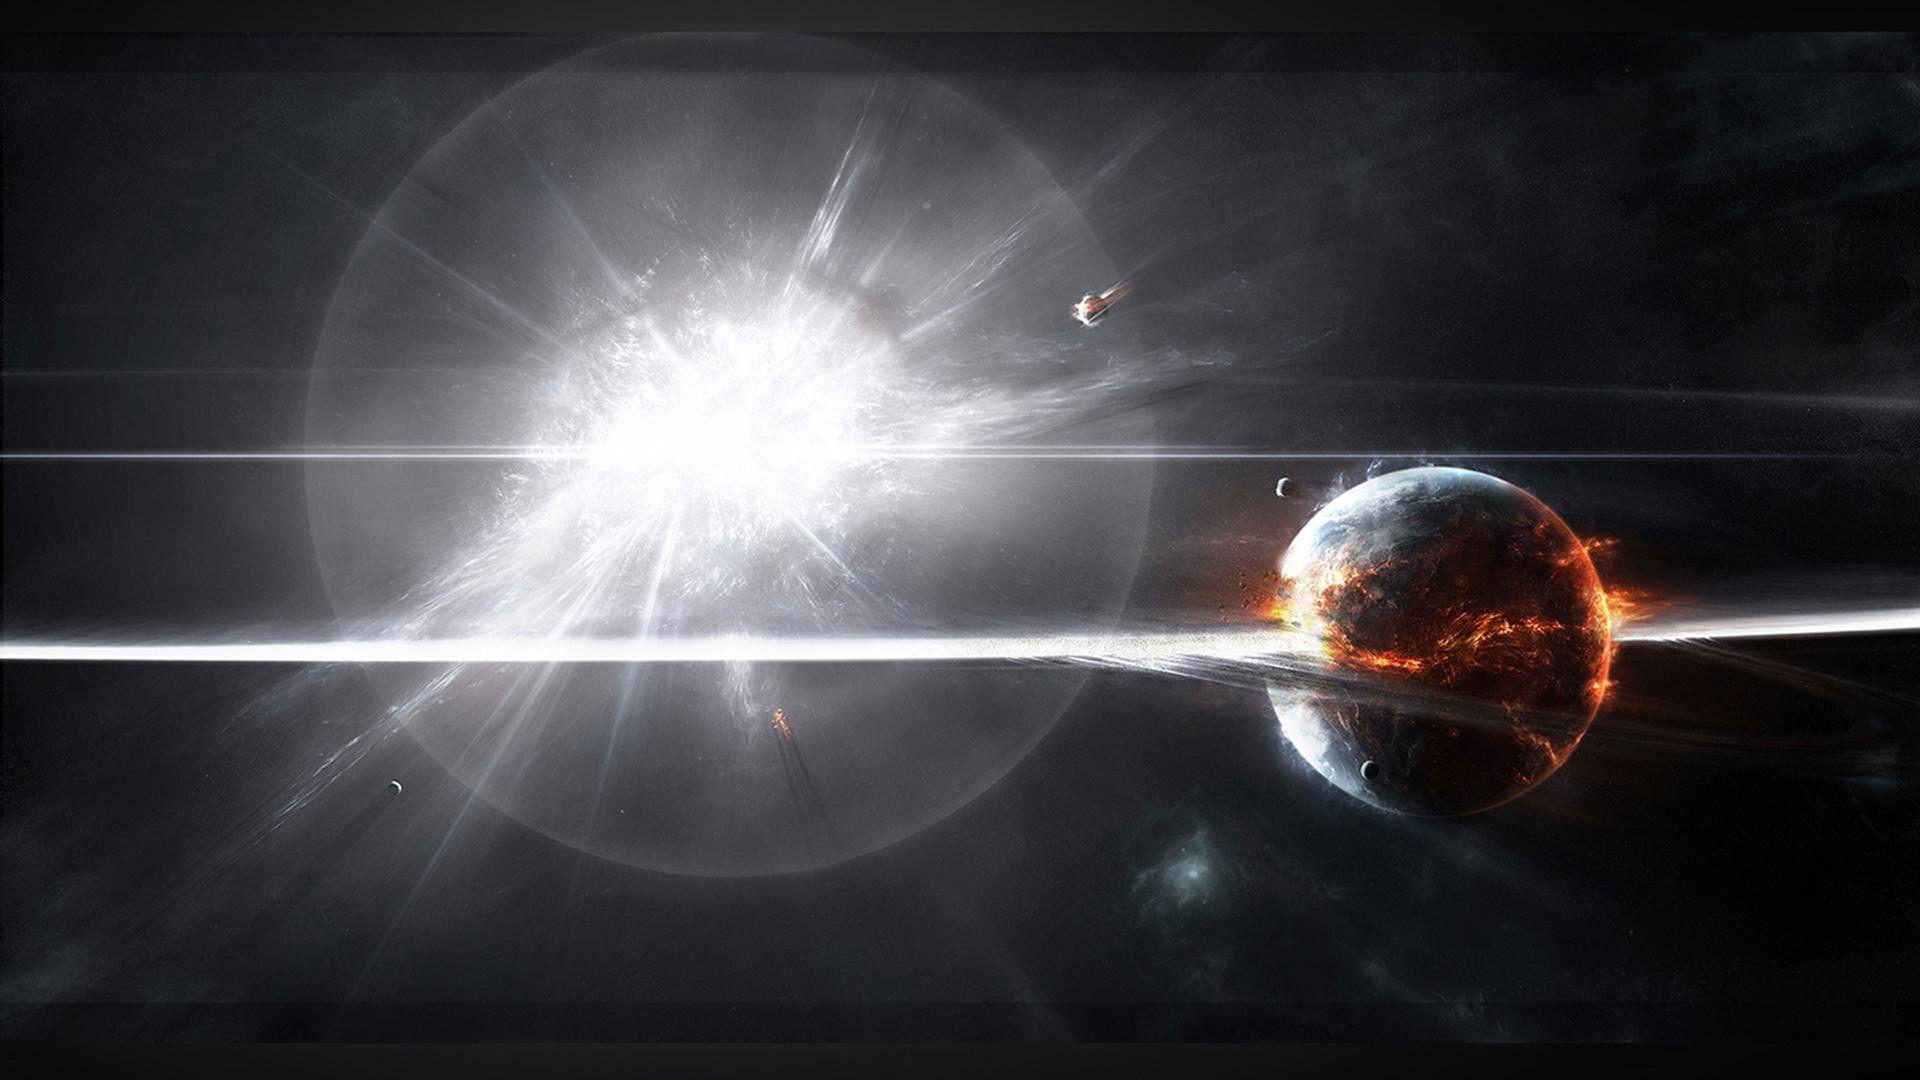 exploding planets wallpapersfor laptops - photo #4